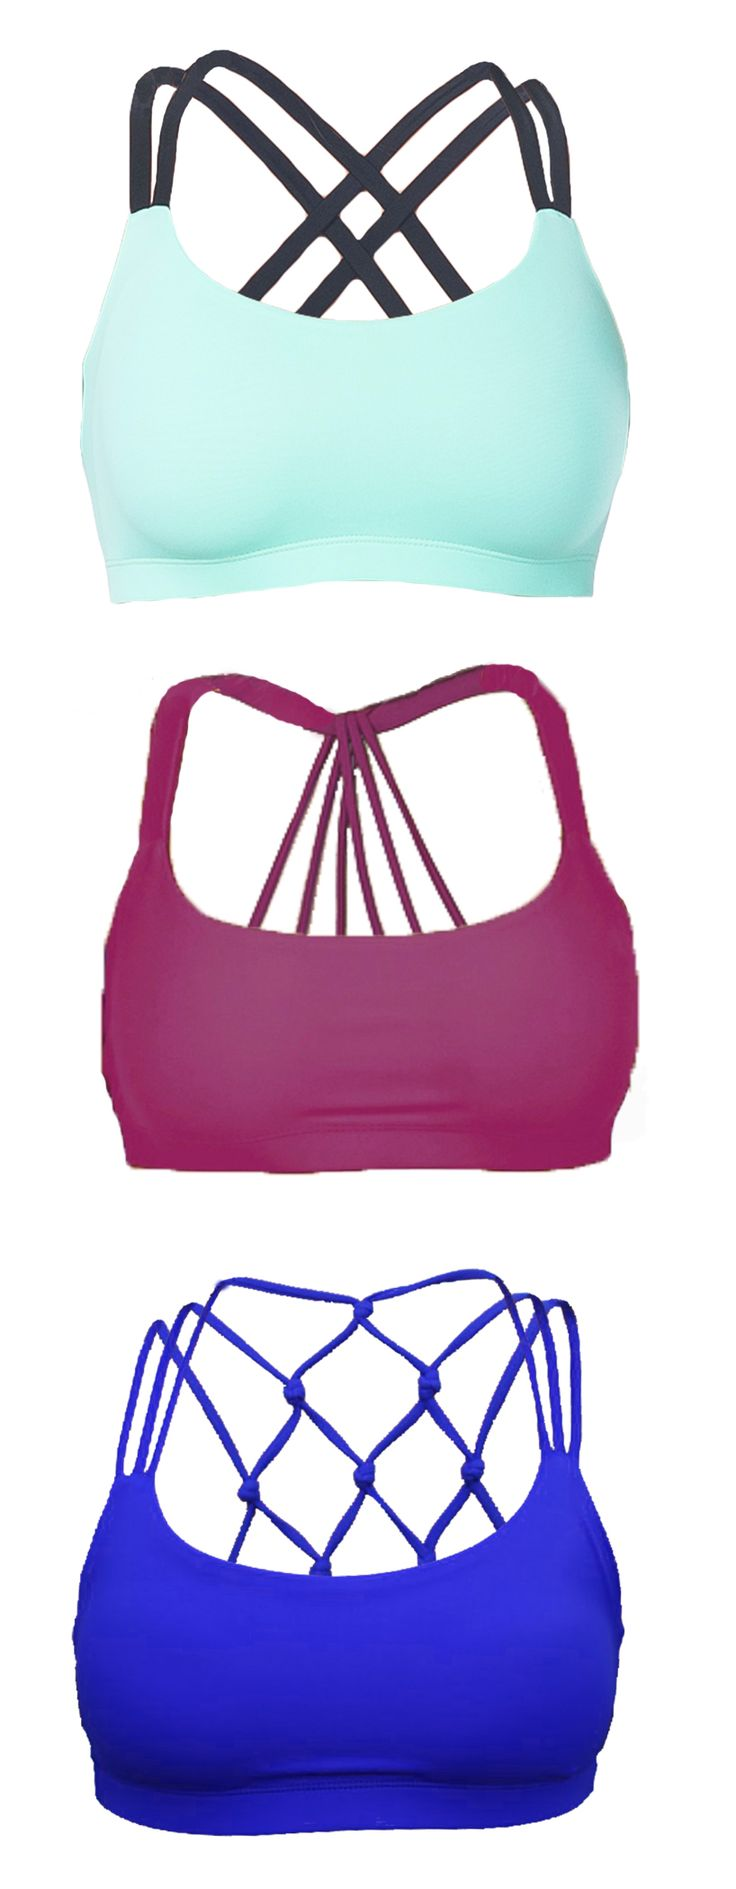 These sports bras are soo cute!